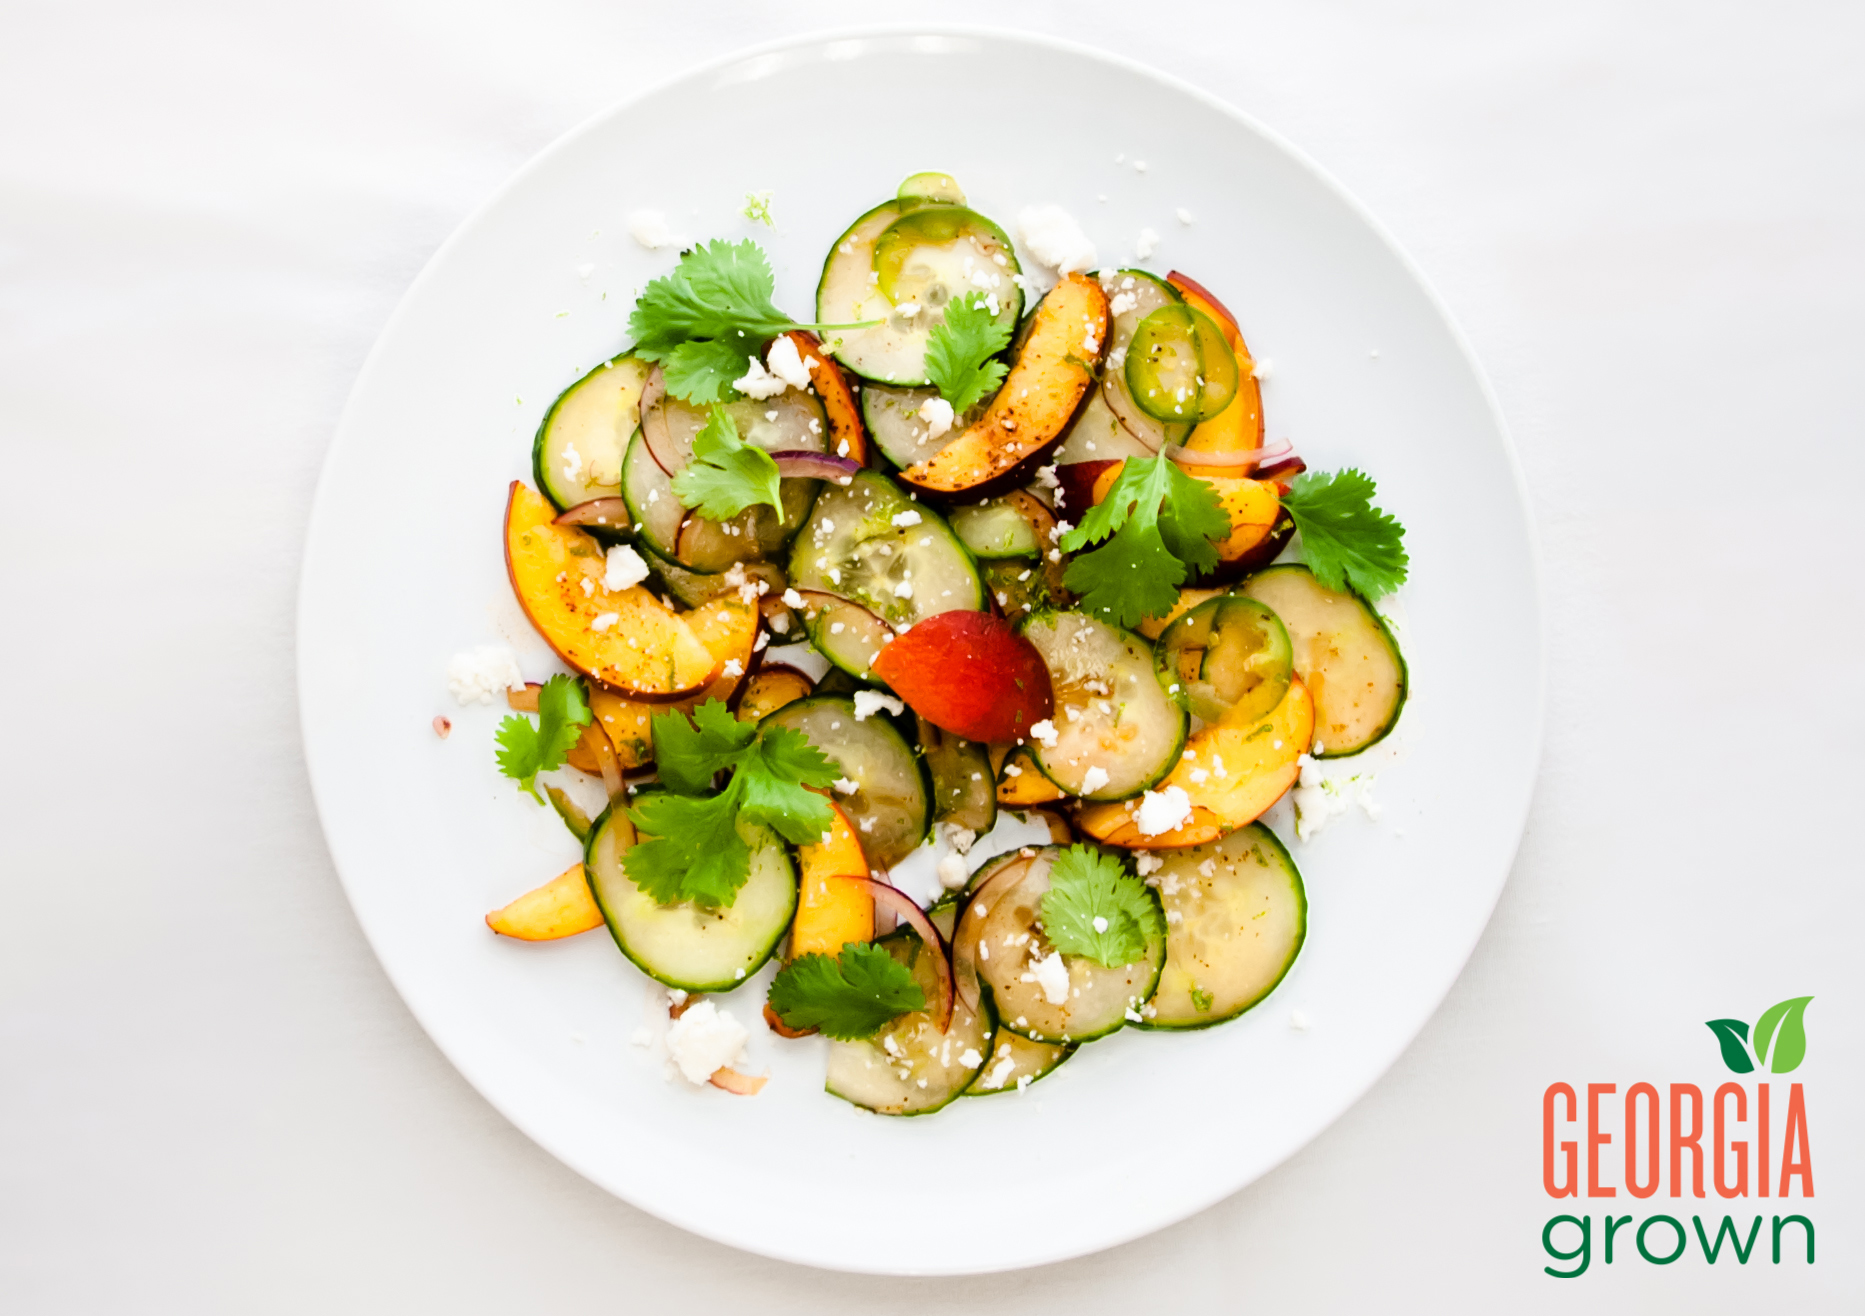 Georgia Peach & Cucumber Salad